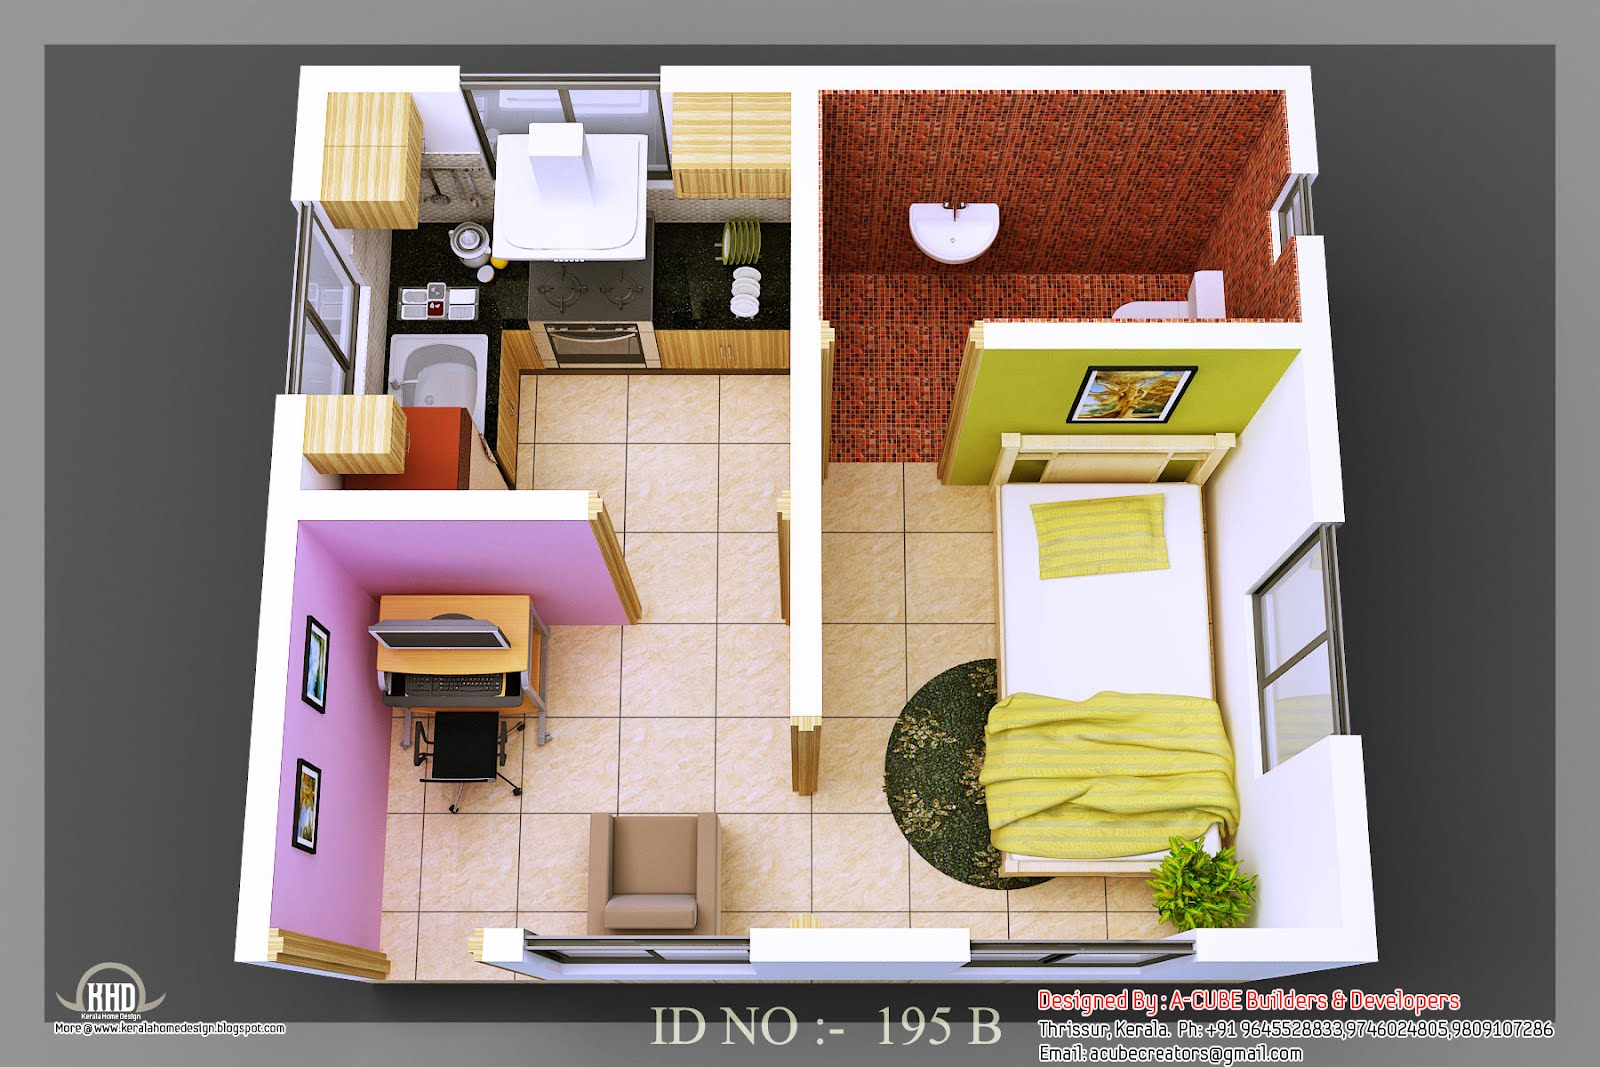 3d isometric views of small house plans home appliance House plan ideas